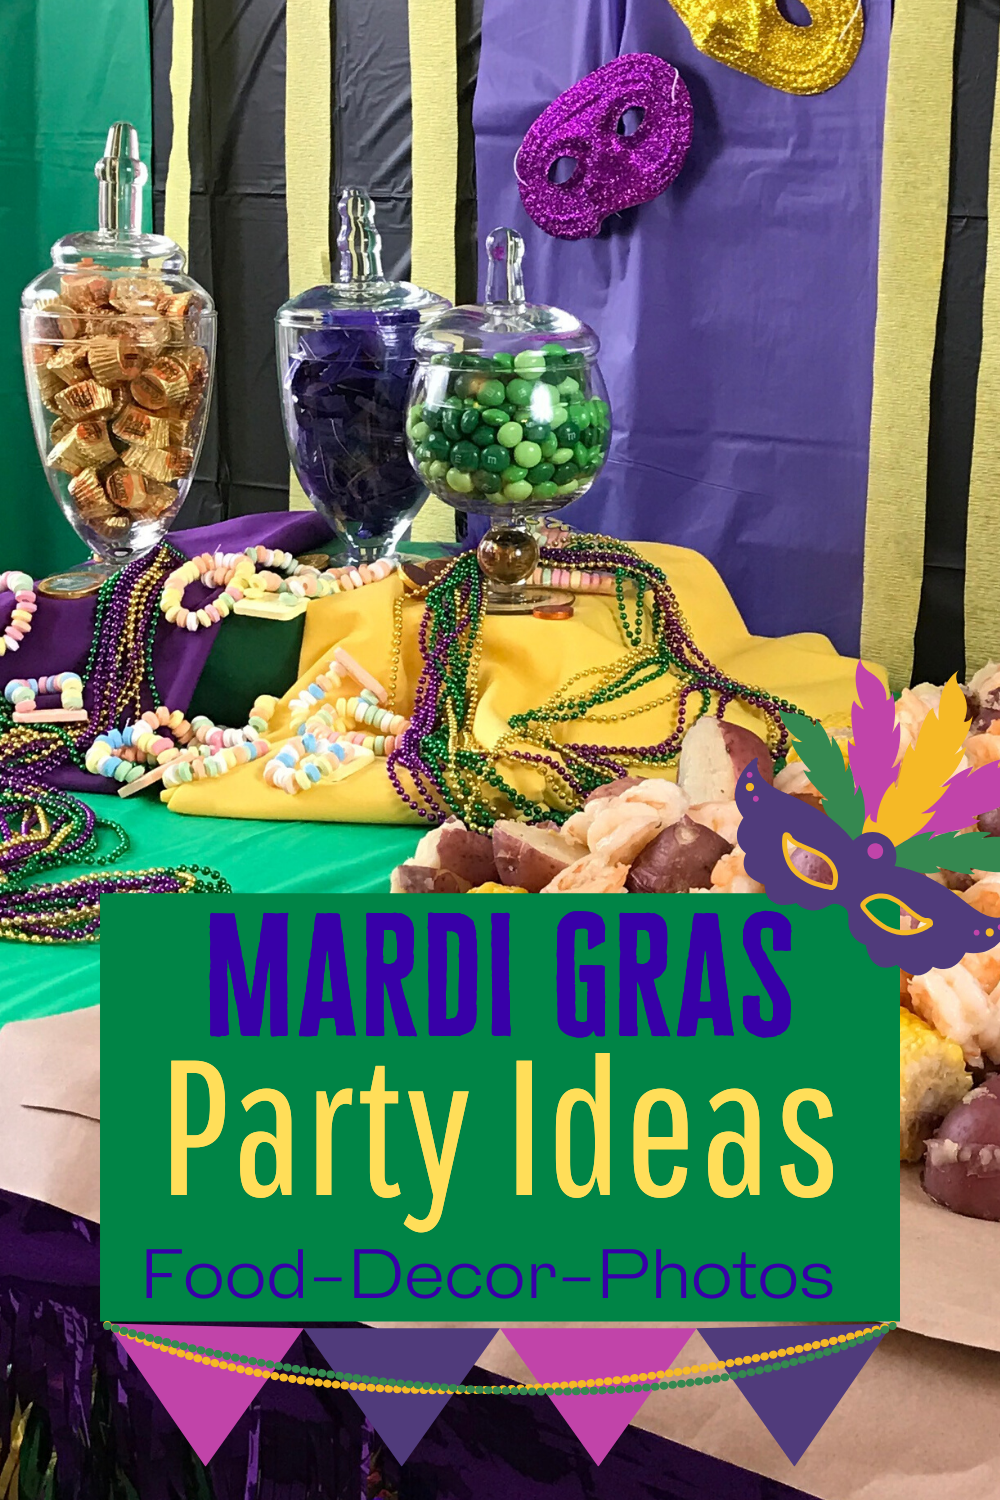 Our Mardi Gras party ideas are a simple but fun family get together with food and photo booth included. Simple colorful decorations anyone can create on the cheap. Recipes you can make at home like we did. #mardigrasparty #intellid